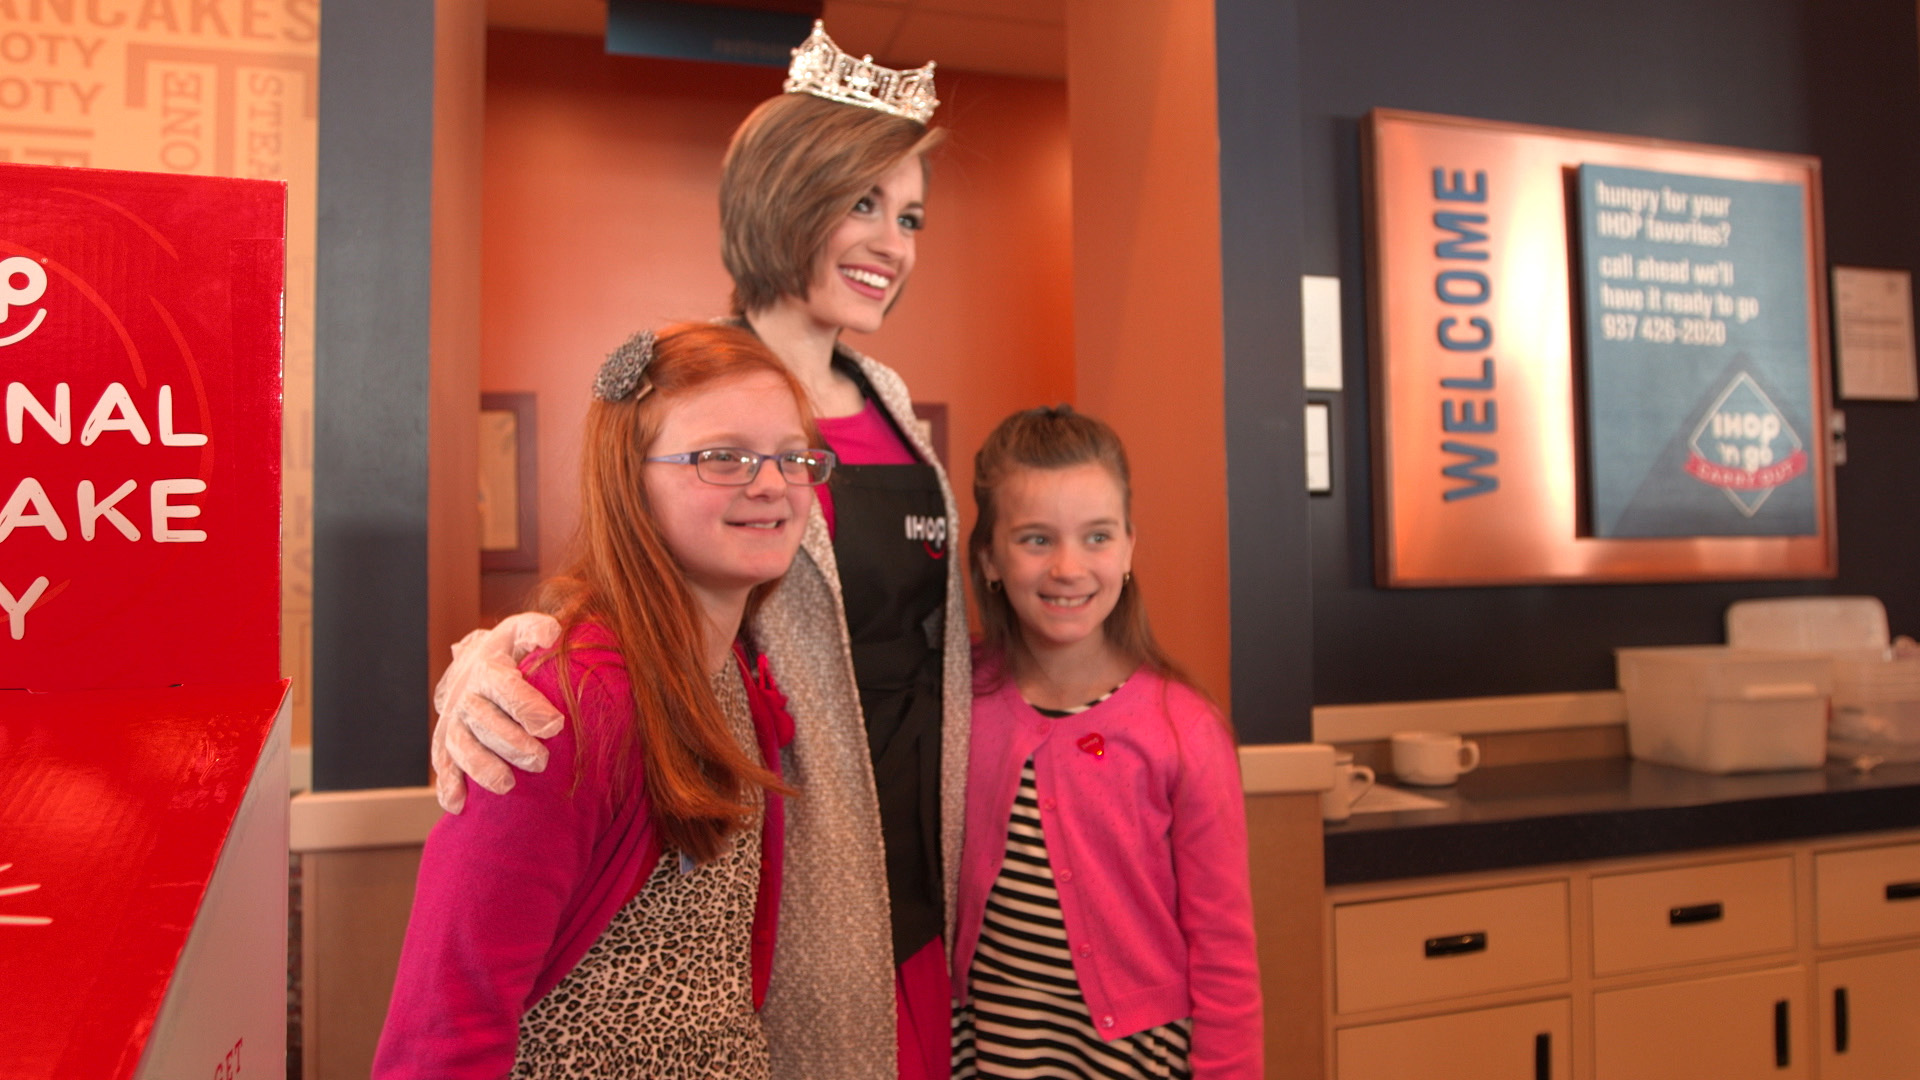 Miss America 2016 spends time with Miracle Children from Dayton Children's Hospital in Support of IHOP's National Pancake Day